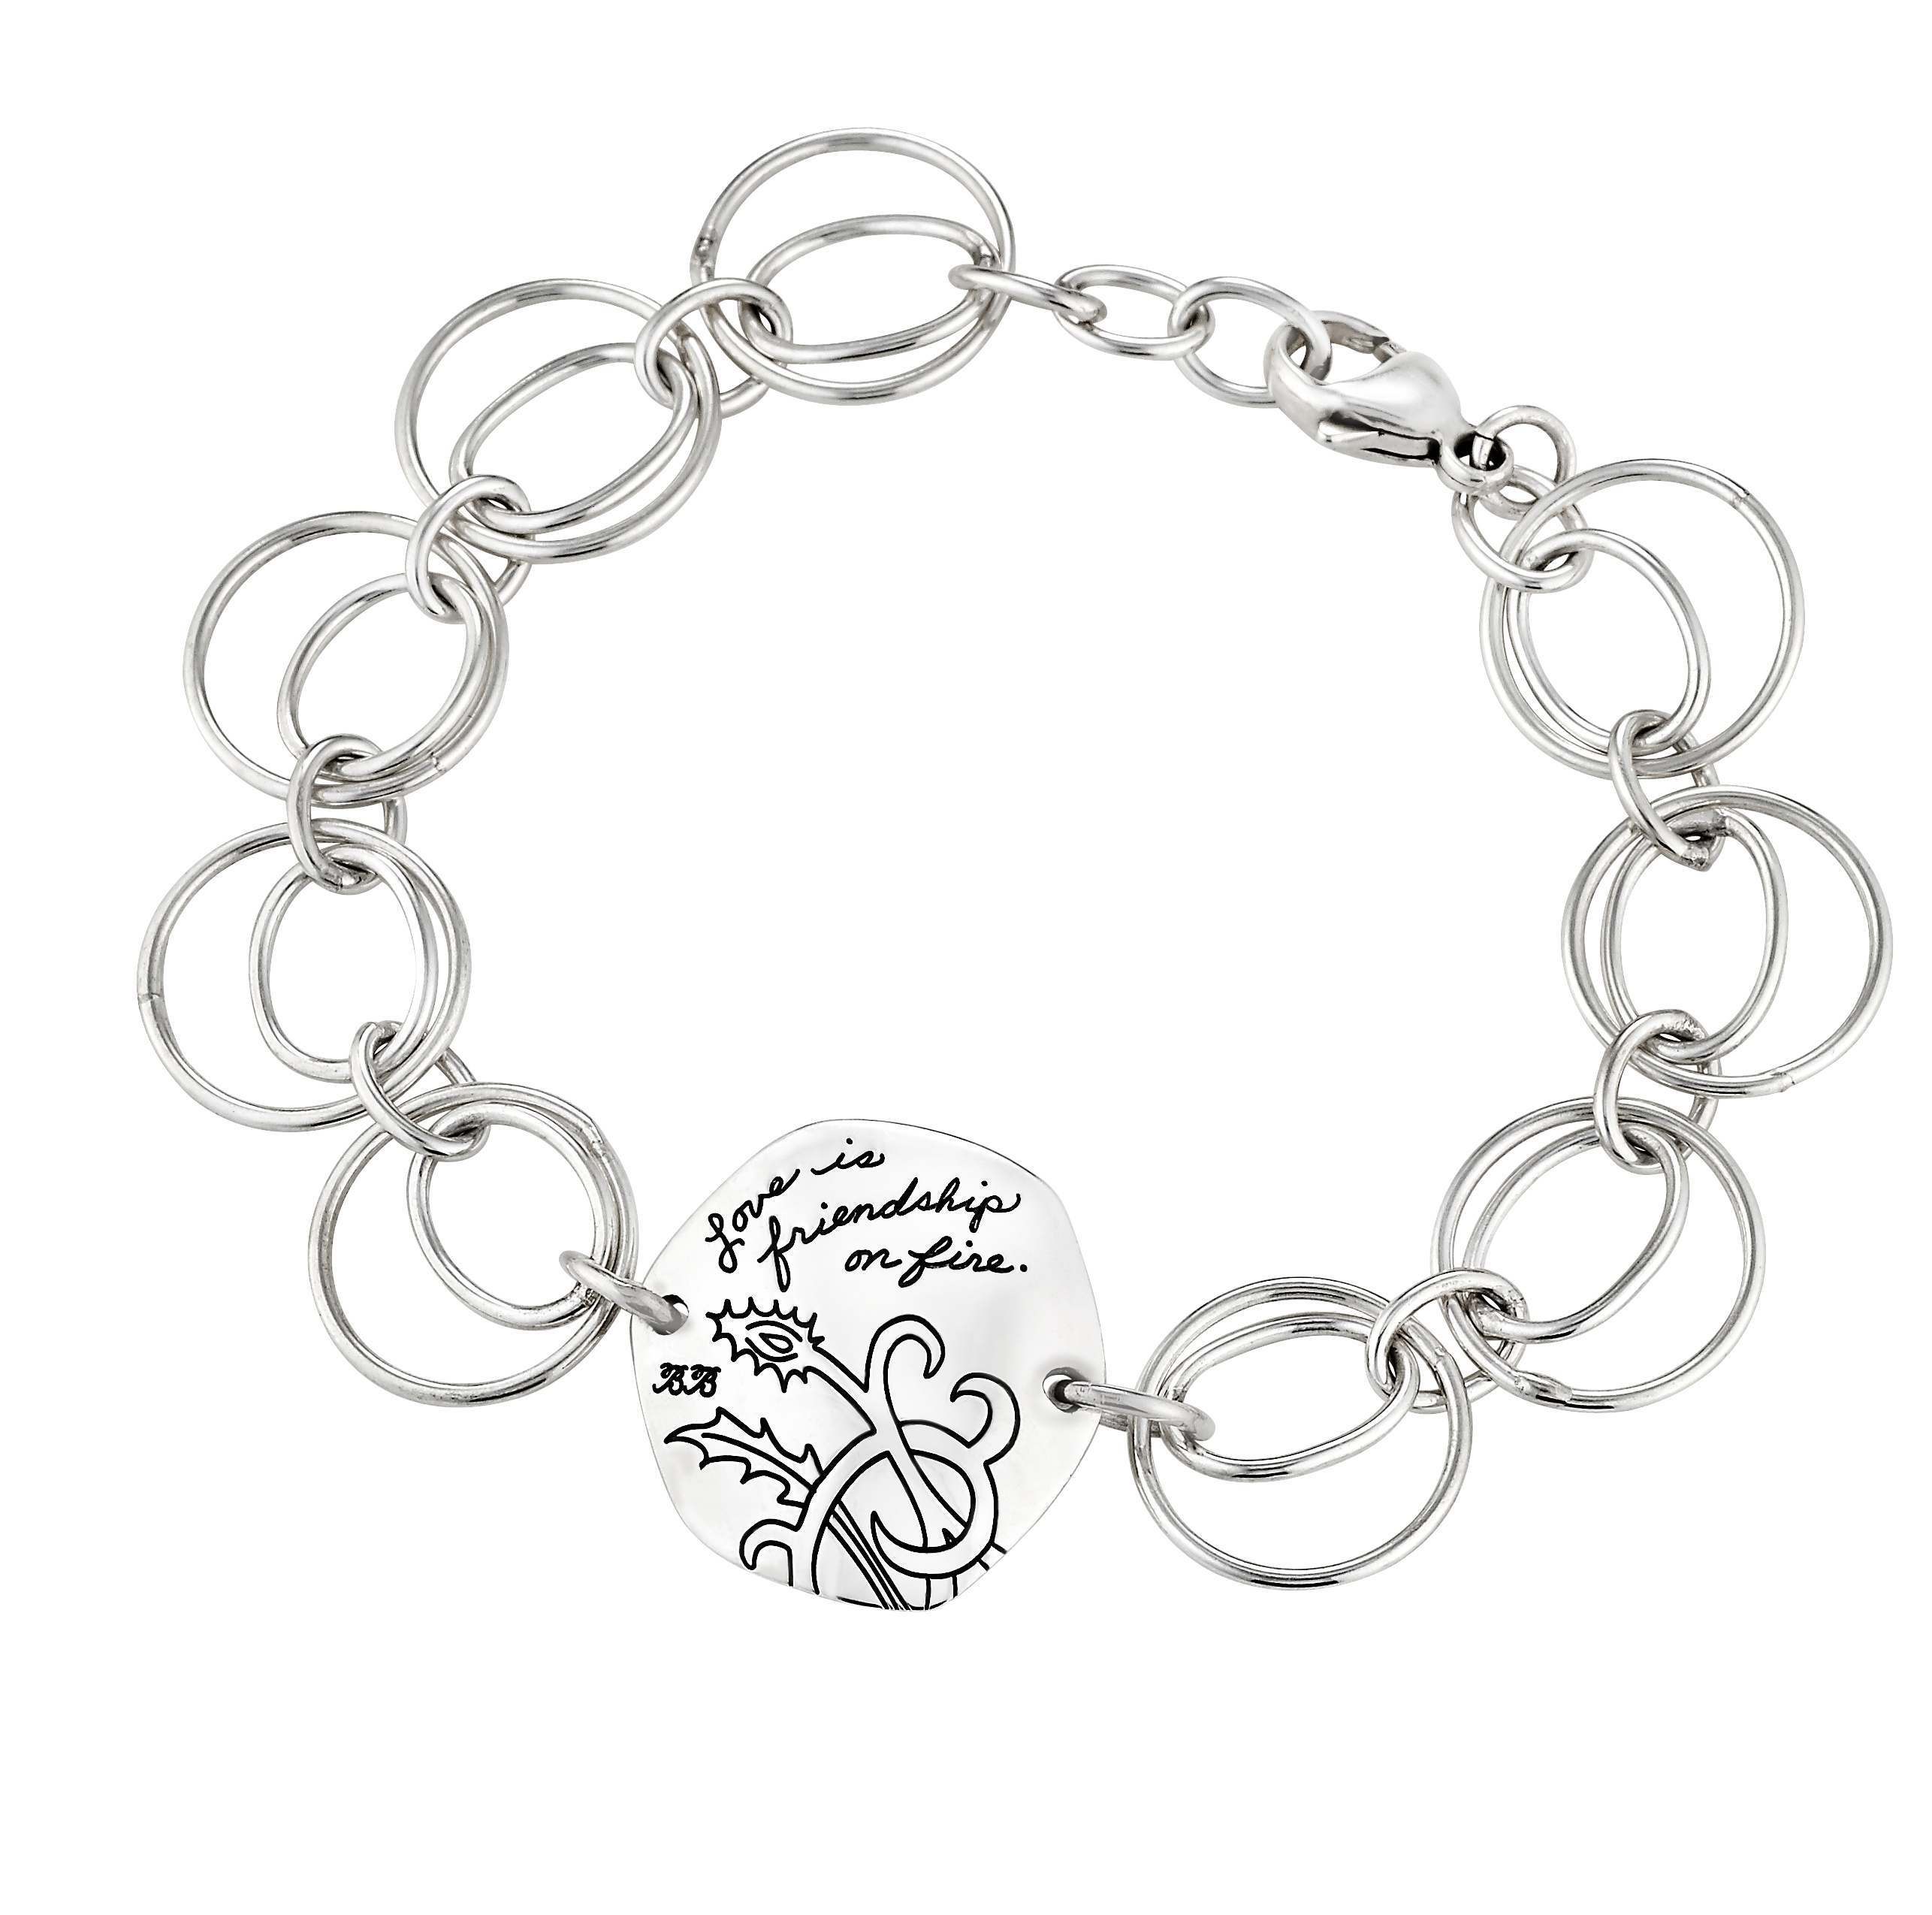 Sterling Silver circle linked bracelet Hexagon shaped plaque with engraved floral design and inspirational message: Love is friendship on fire.